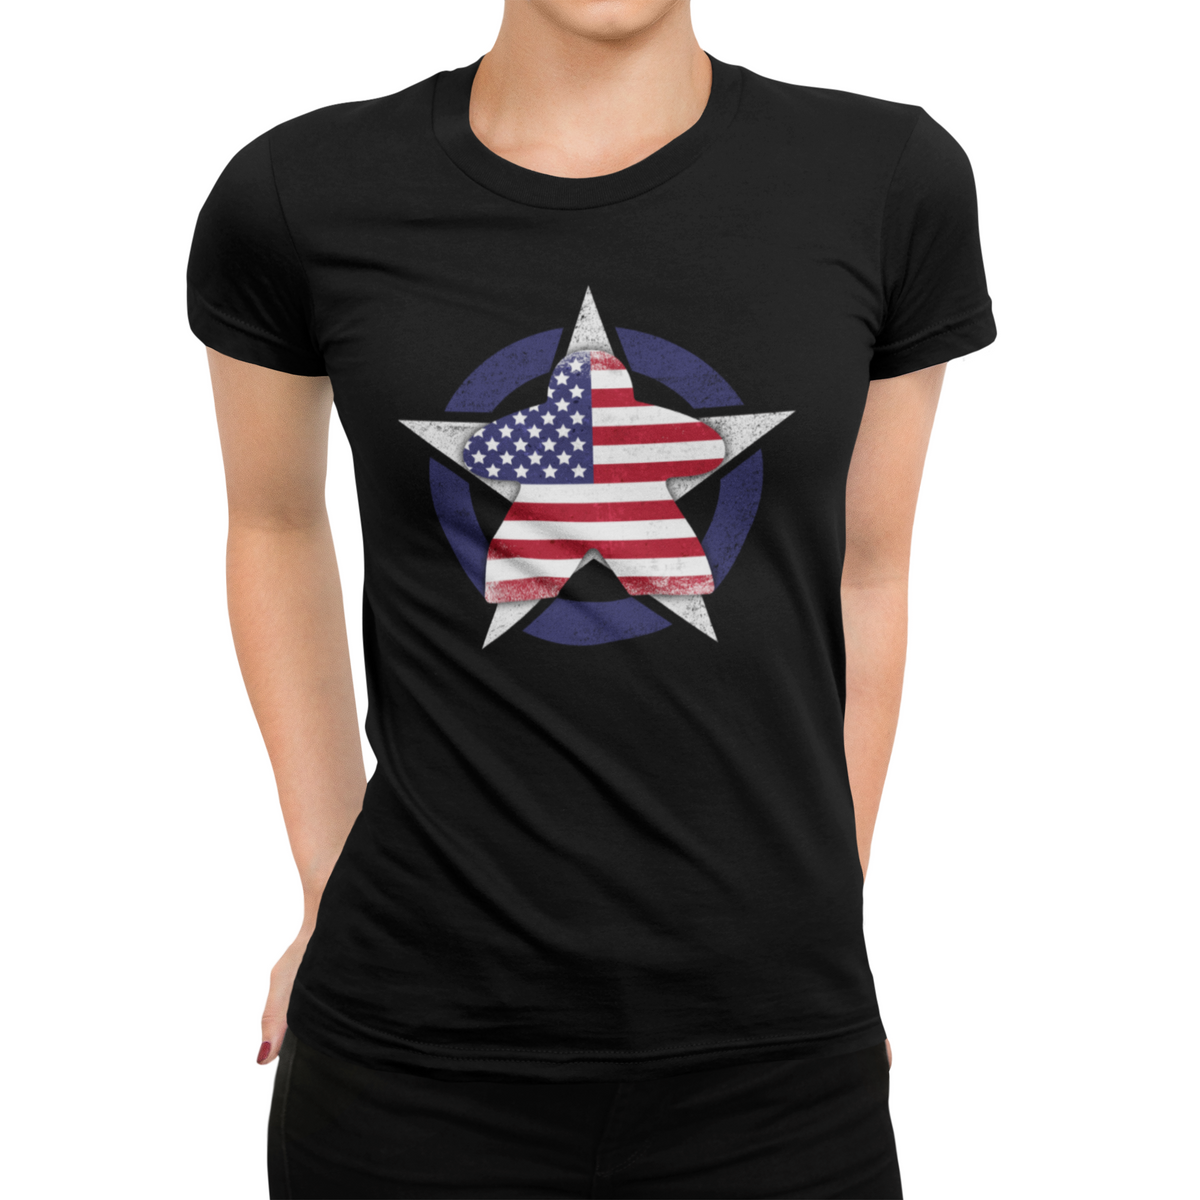 American Flag Meeple Board Game T-Shirt